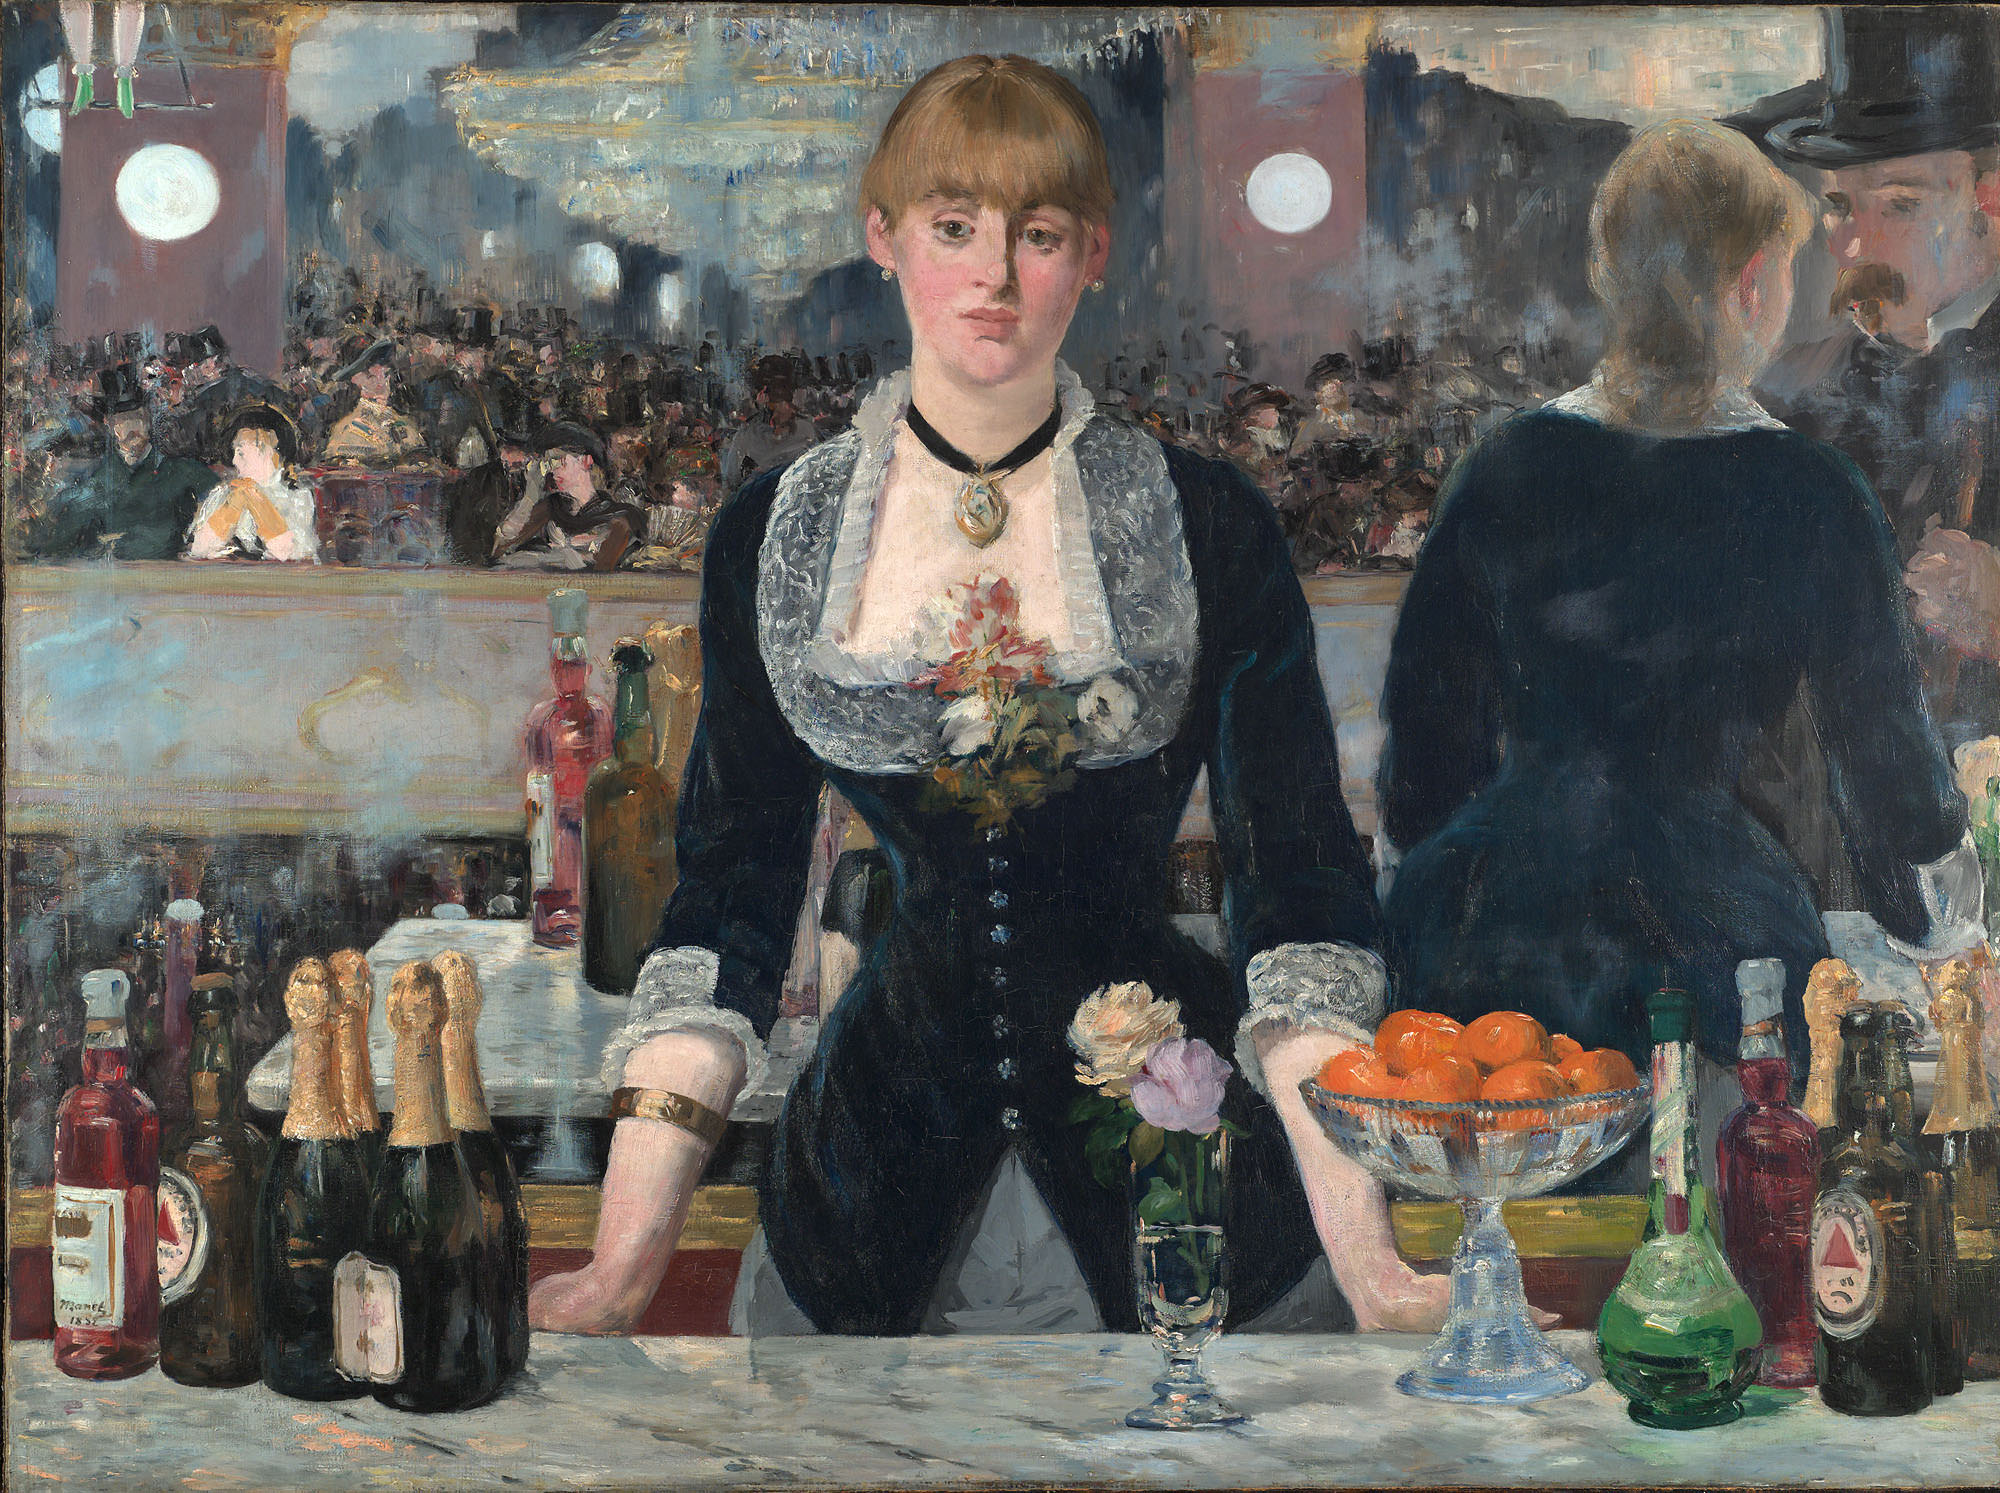 A Bar at Folies-Bergere by Edouard Manet